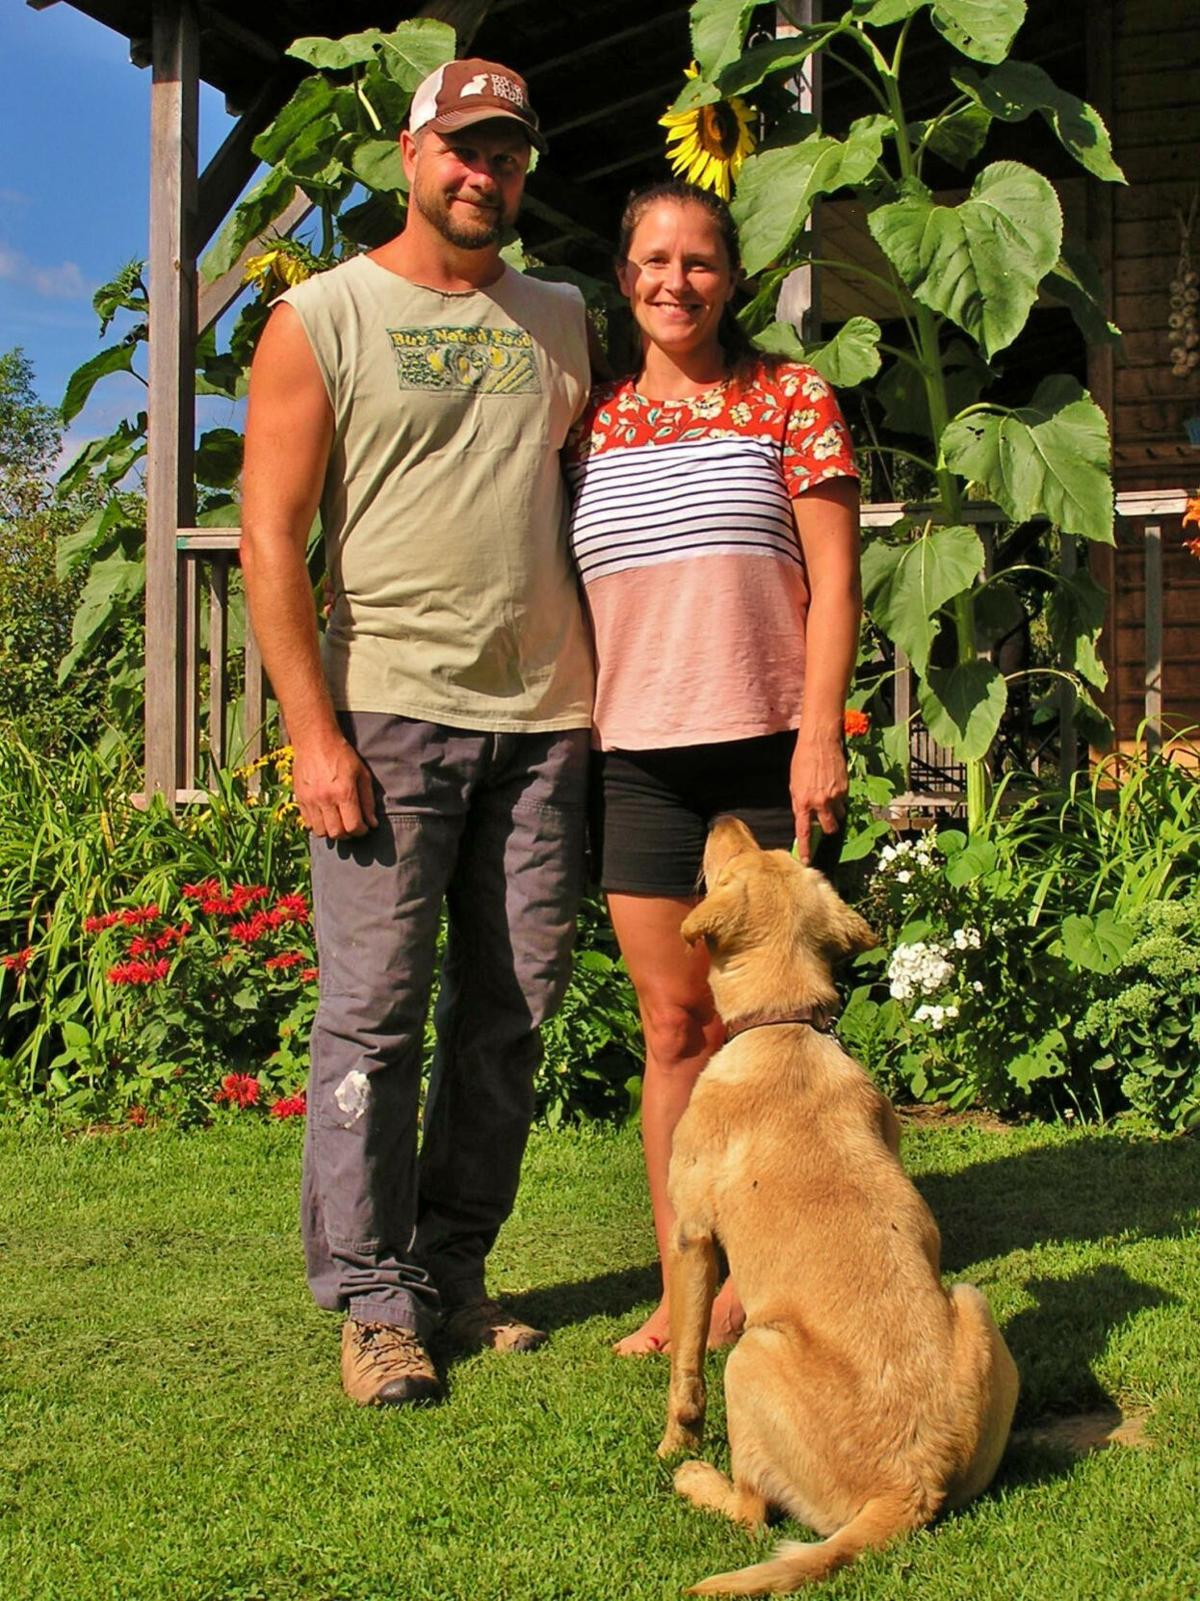 Todd and Kelsey Rothe with their dog, Sonny